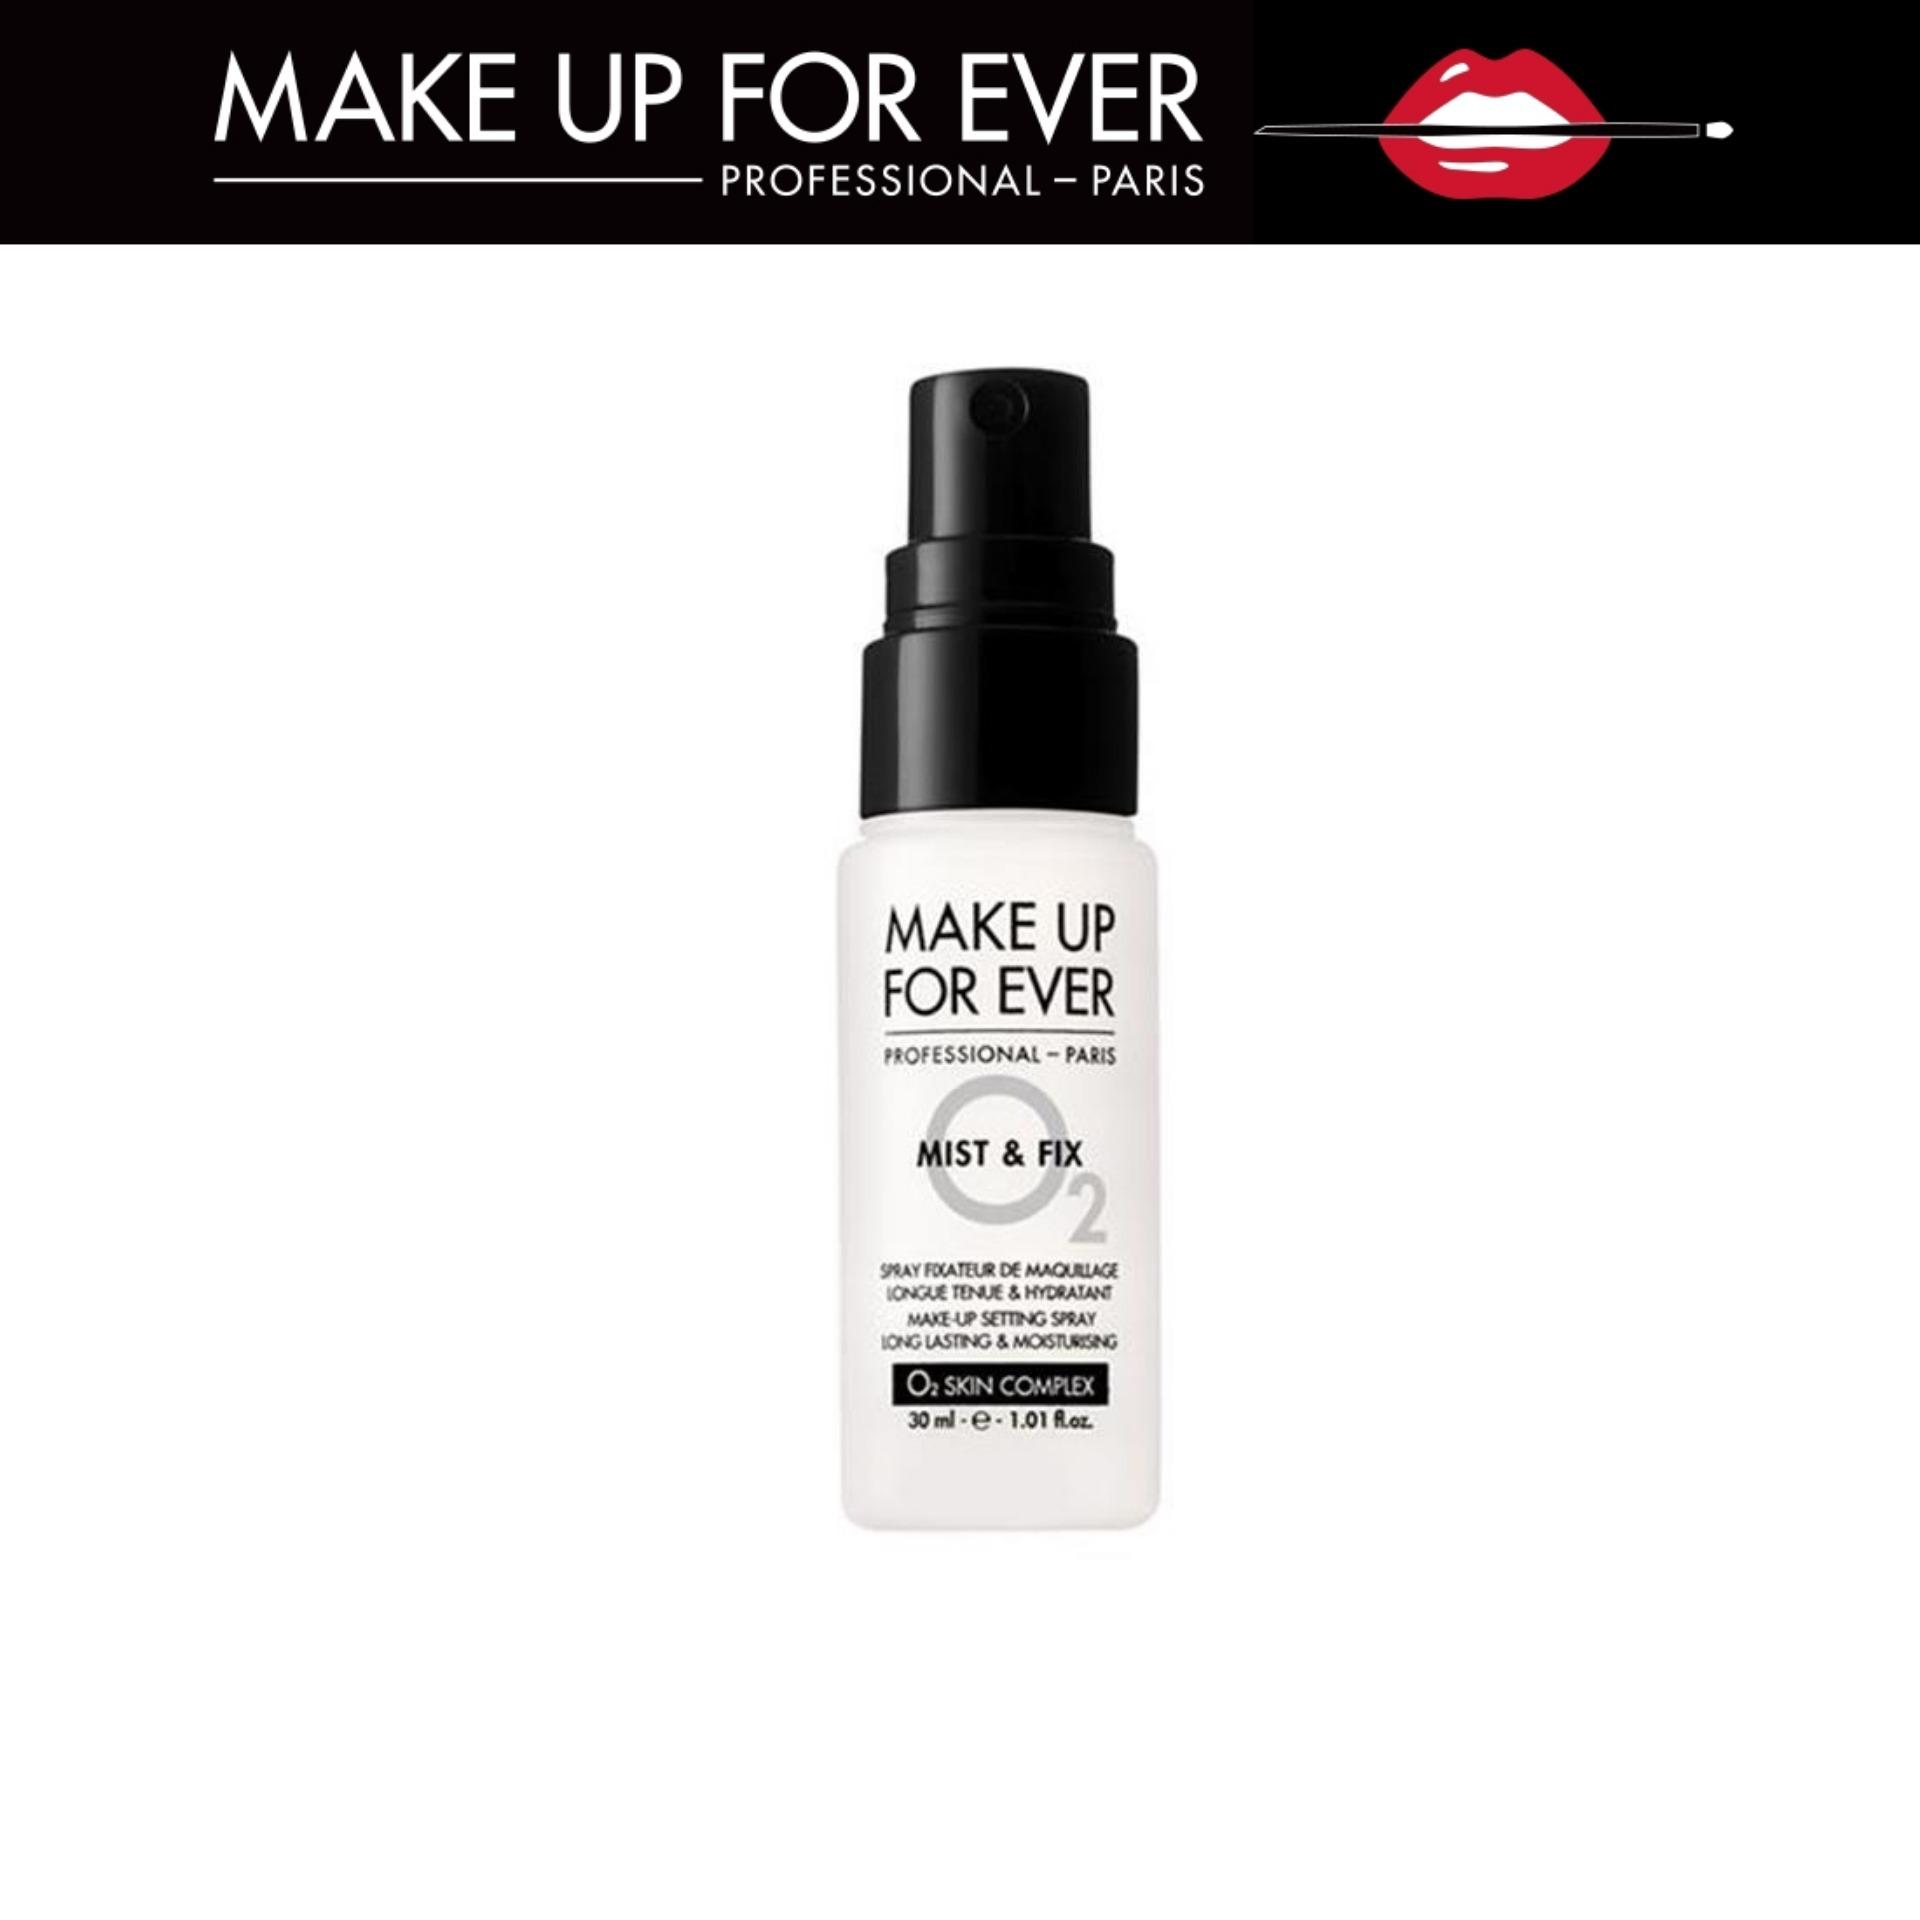 FaceStudio Lasting Fix Makeup Setting Spray - Matte Finish by Maybelline #16